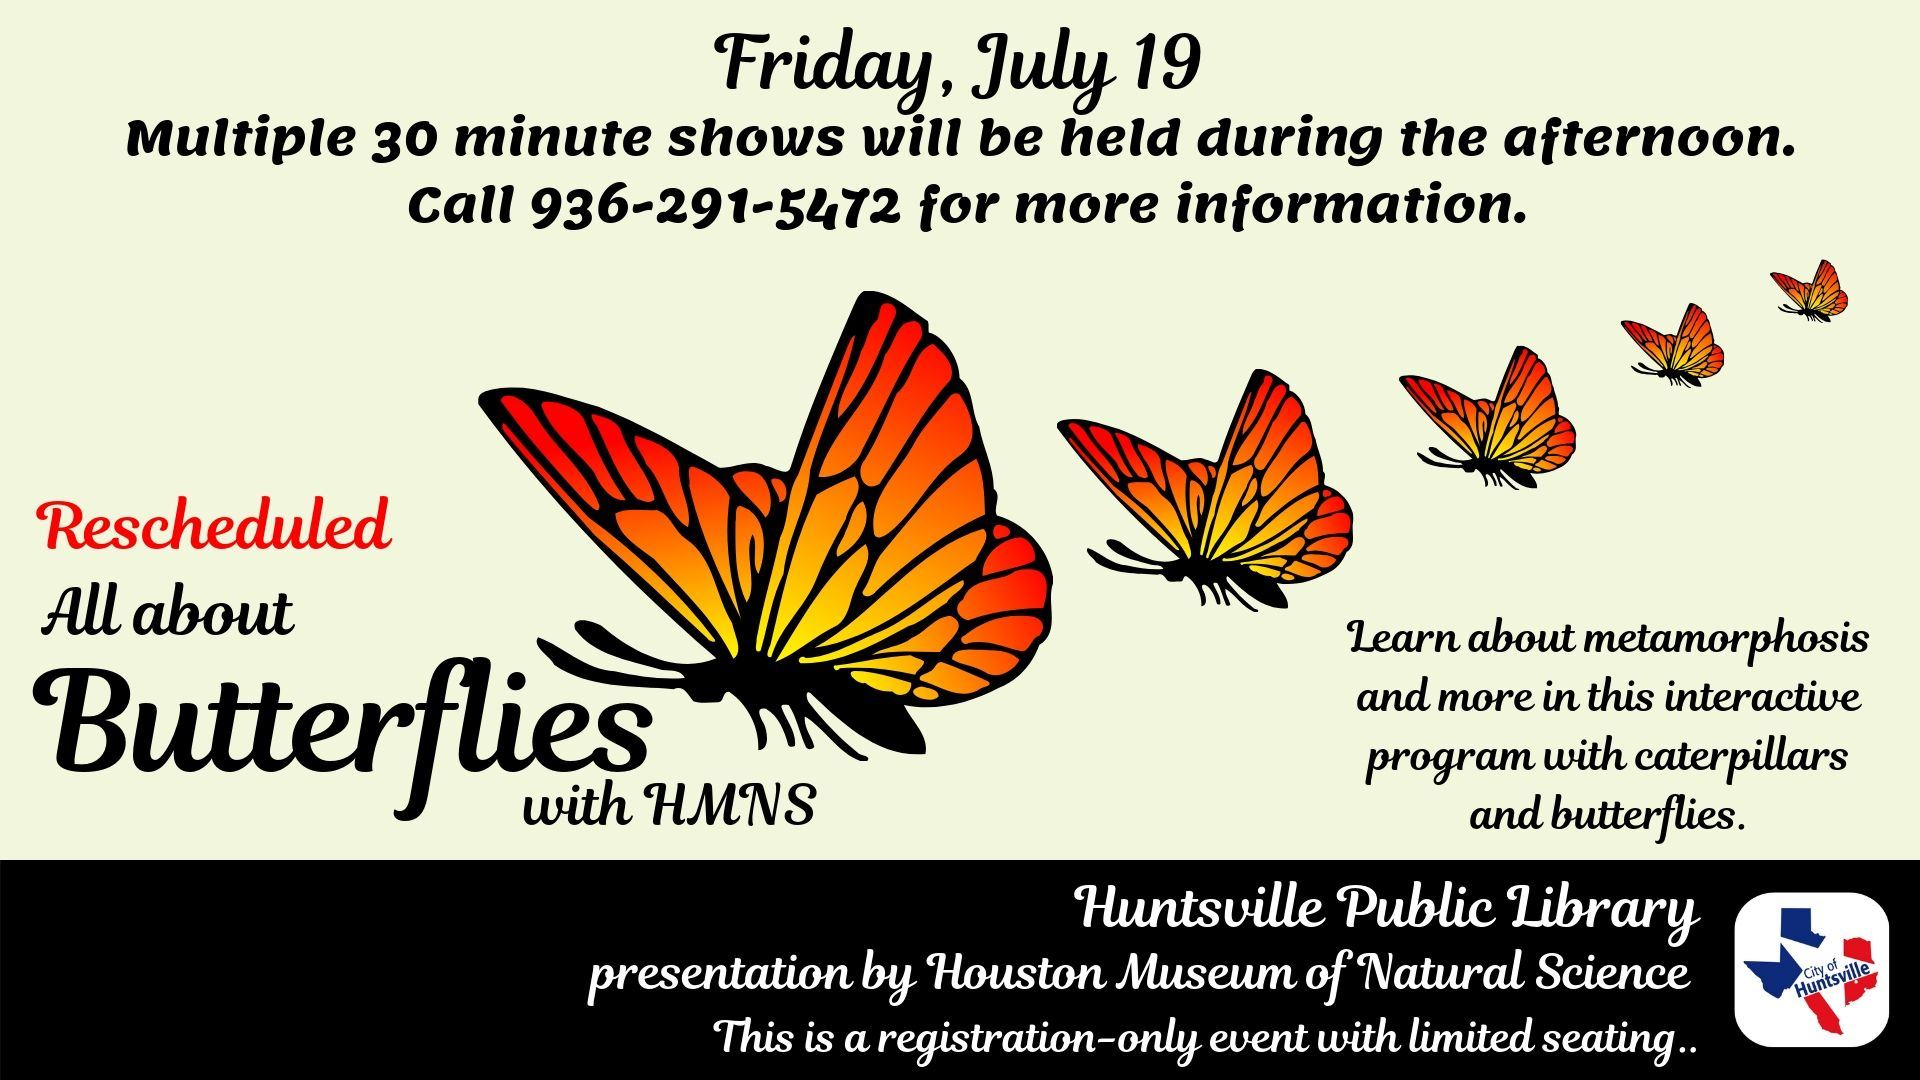 All about Butterflies-Rescheduled